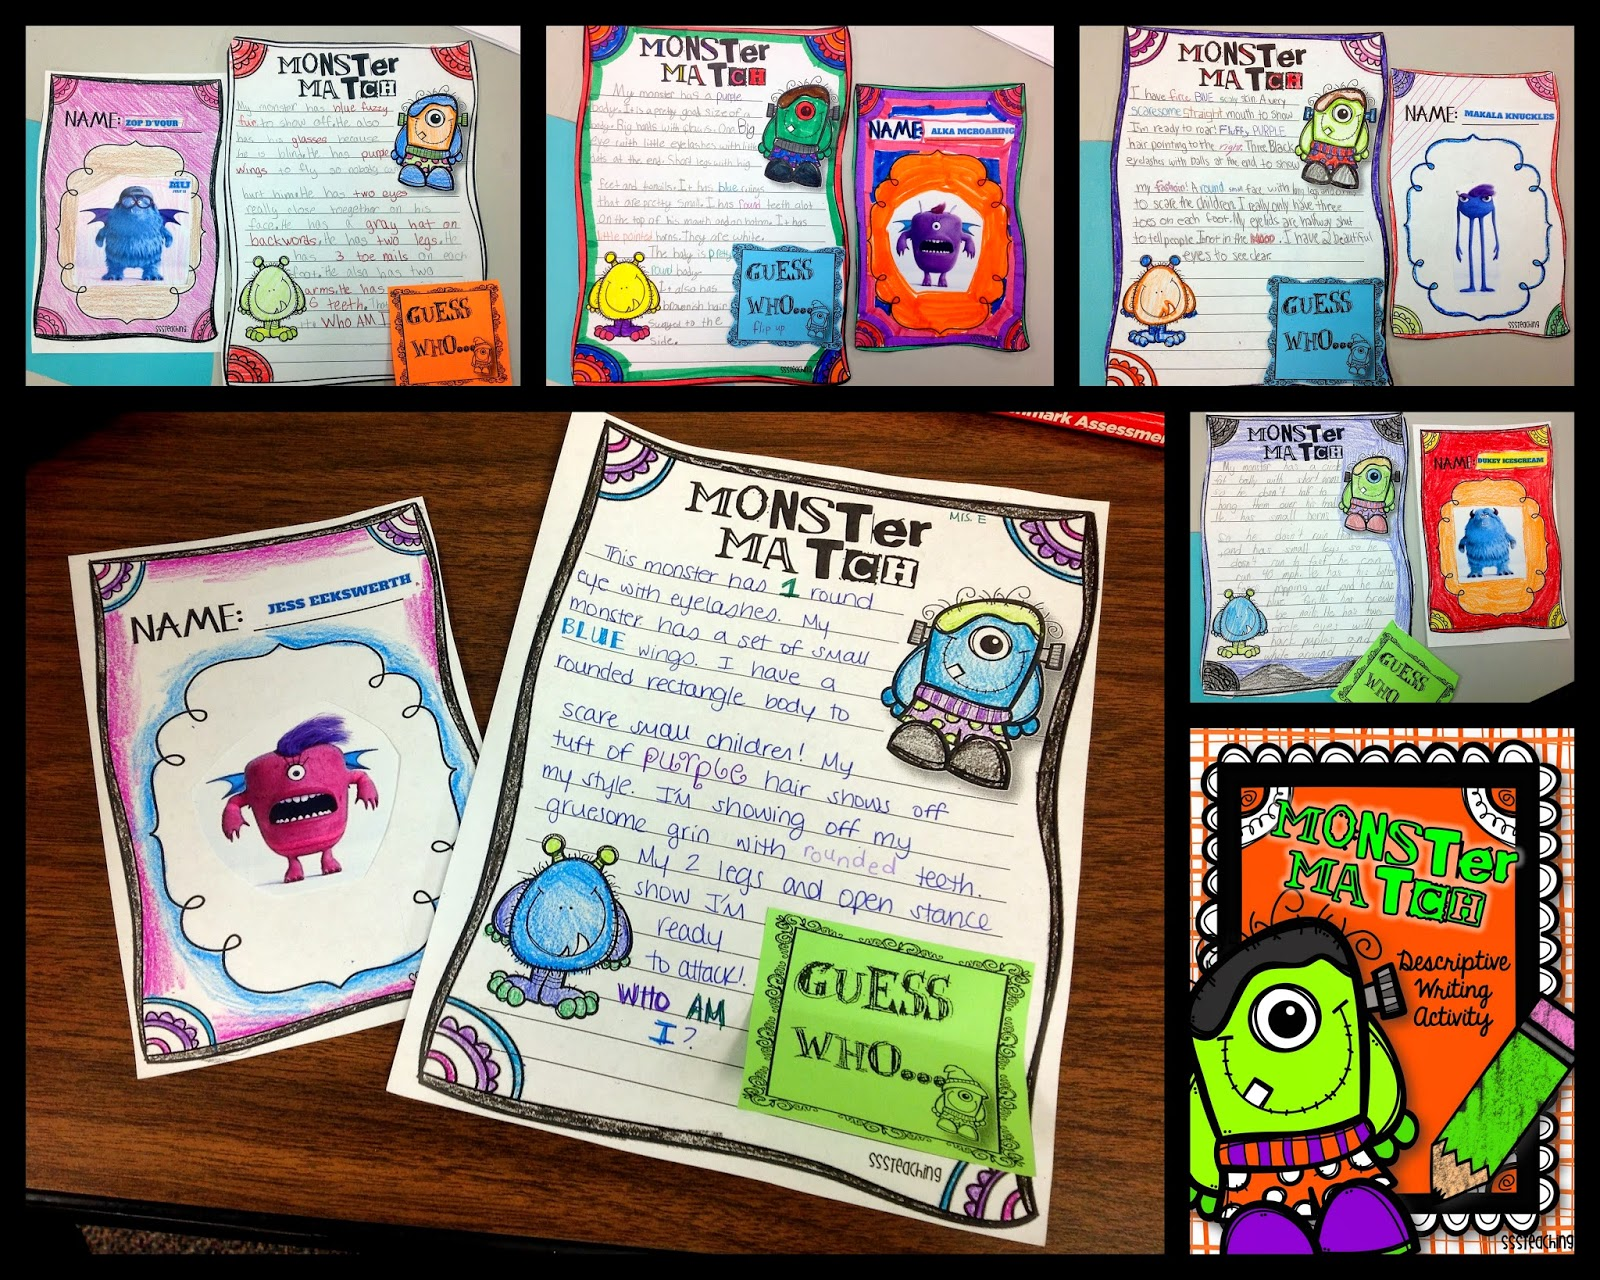 descriptive writing monster match sssteaching such an easy process of making a monster and writing it is sure to be a hit in any classroom